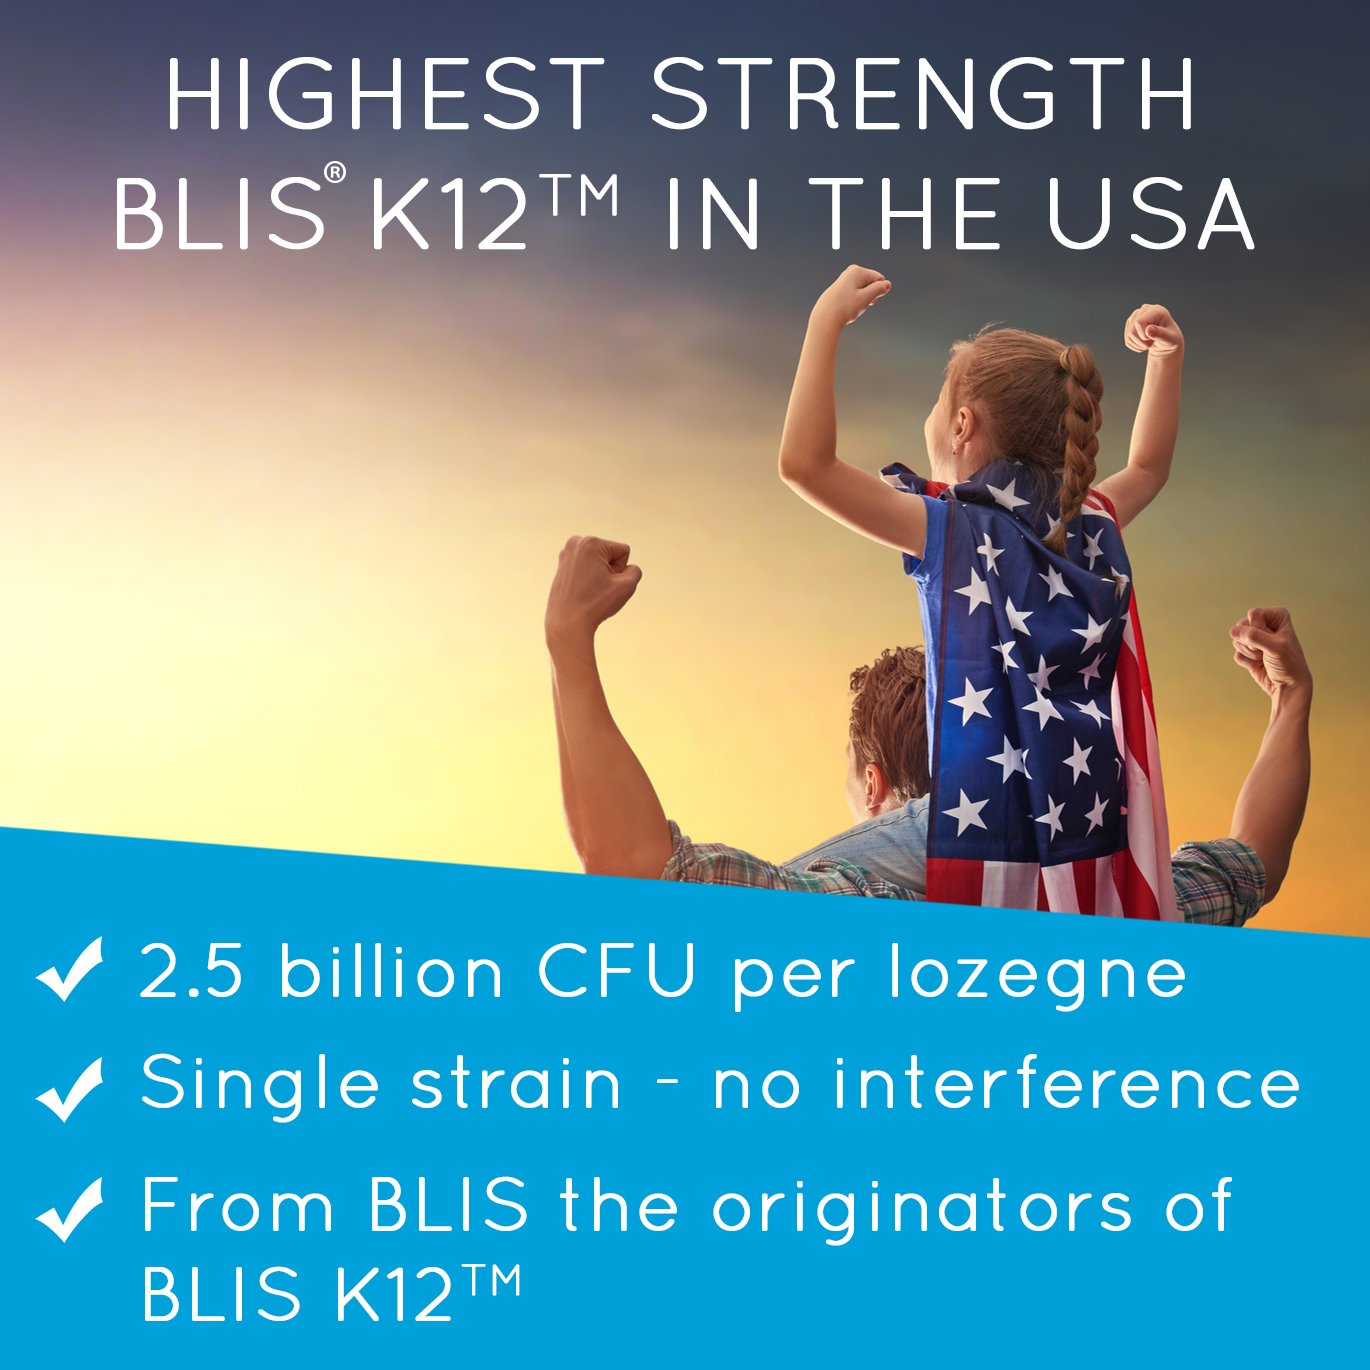 BLIS ThroatHealth Oral Probiotic, Most Potent BLIS K12 Formula Available, 2.5 Billion CFU, Throat Immunity Support for Adults and Kids, Sugar-Free Lozenges, 30 Day Supply by bliss (Image #3)